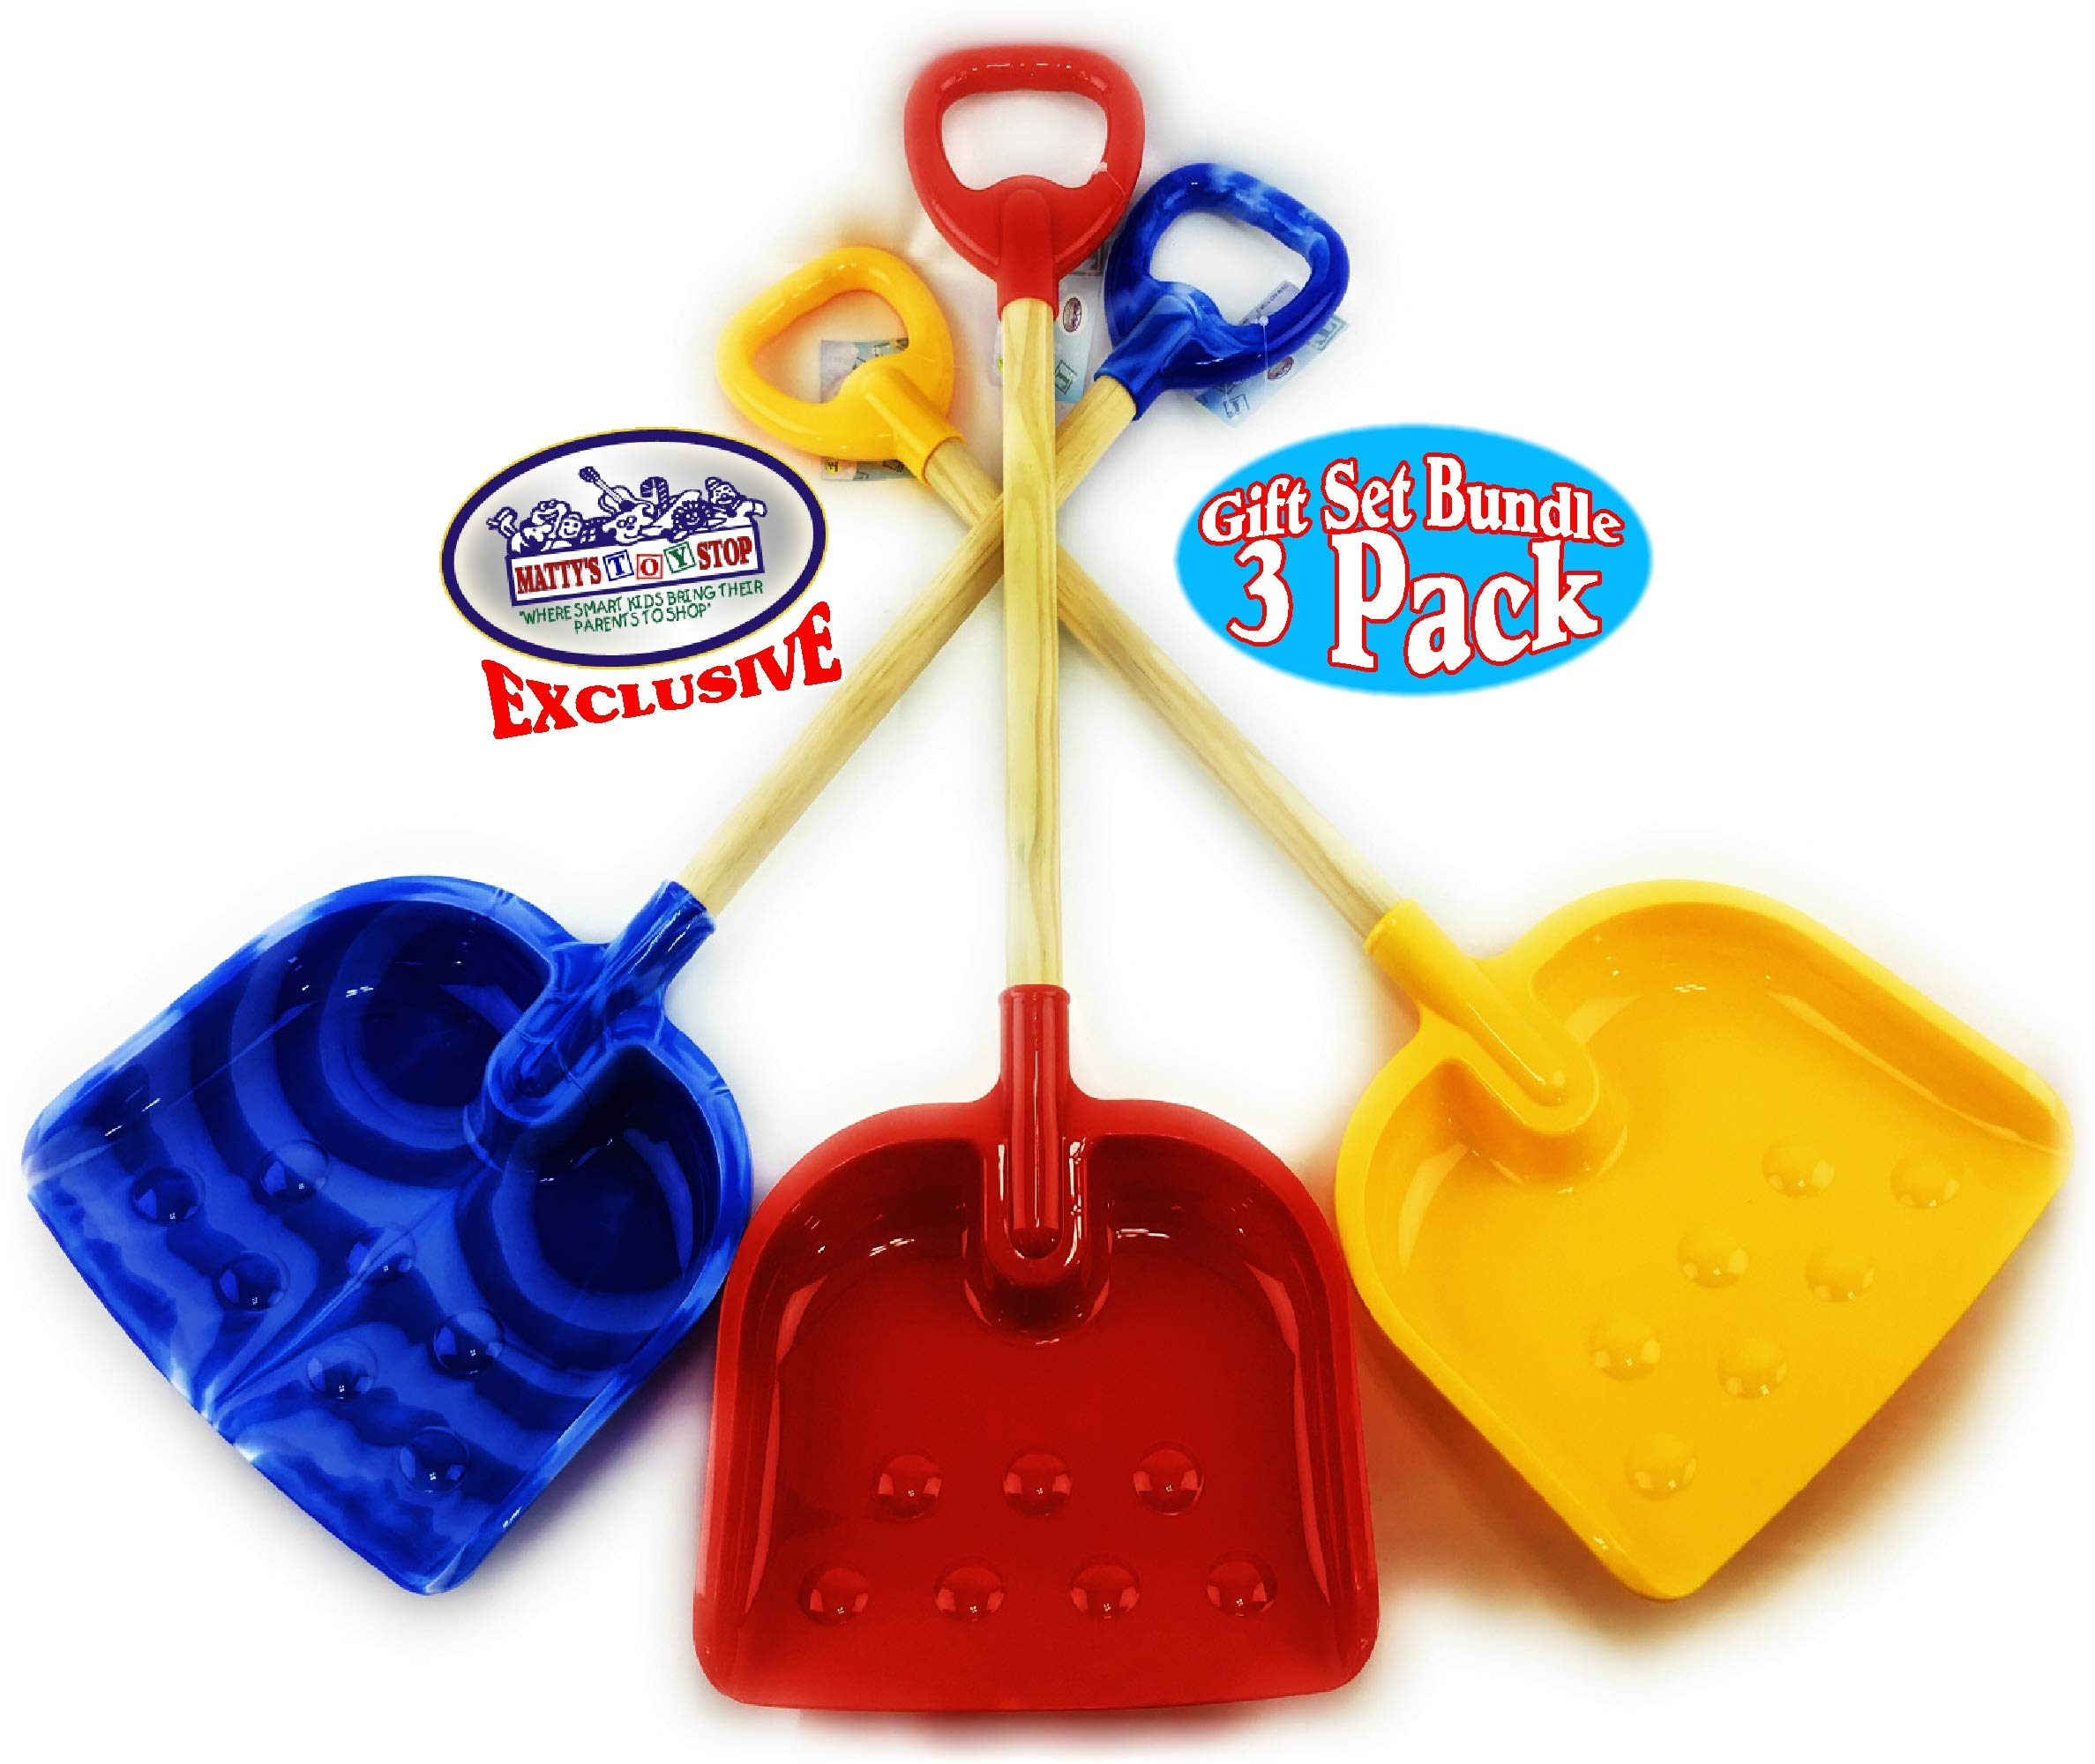 Matty's Toy Stop 28'' Heavy Duty Wooden Snow Shovels with Plastic Scoop & Handle for Kids Red, Yellow & Blue Swirl Gift Set Bundle - 3 Pack by Matty's Toy Stop